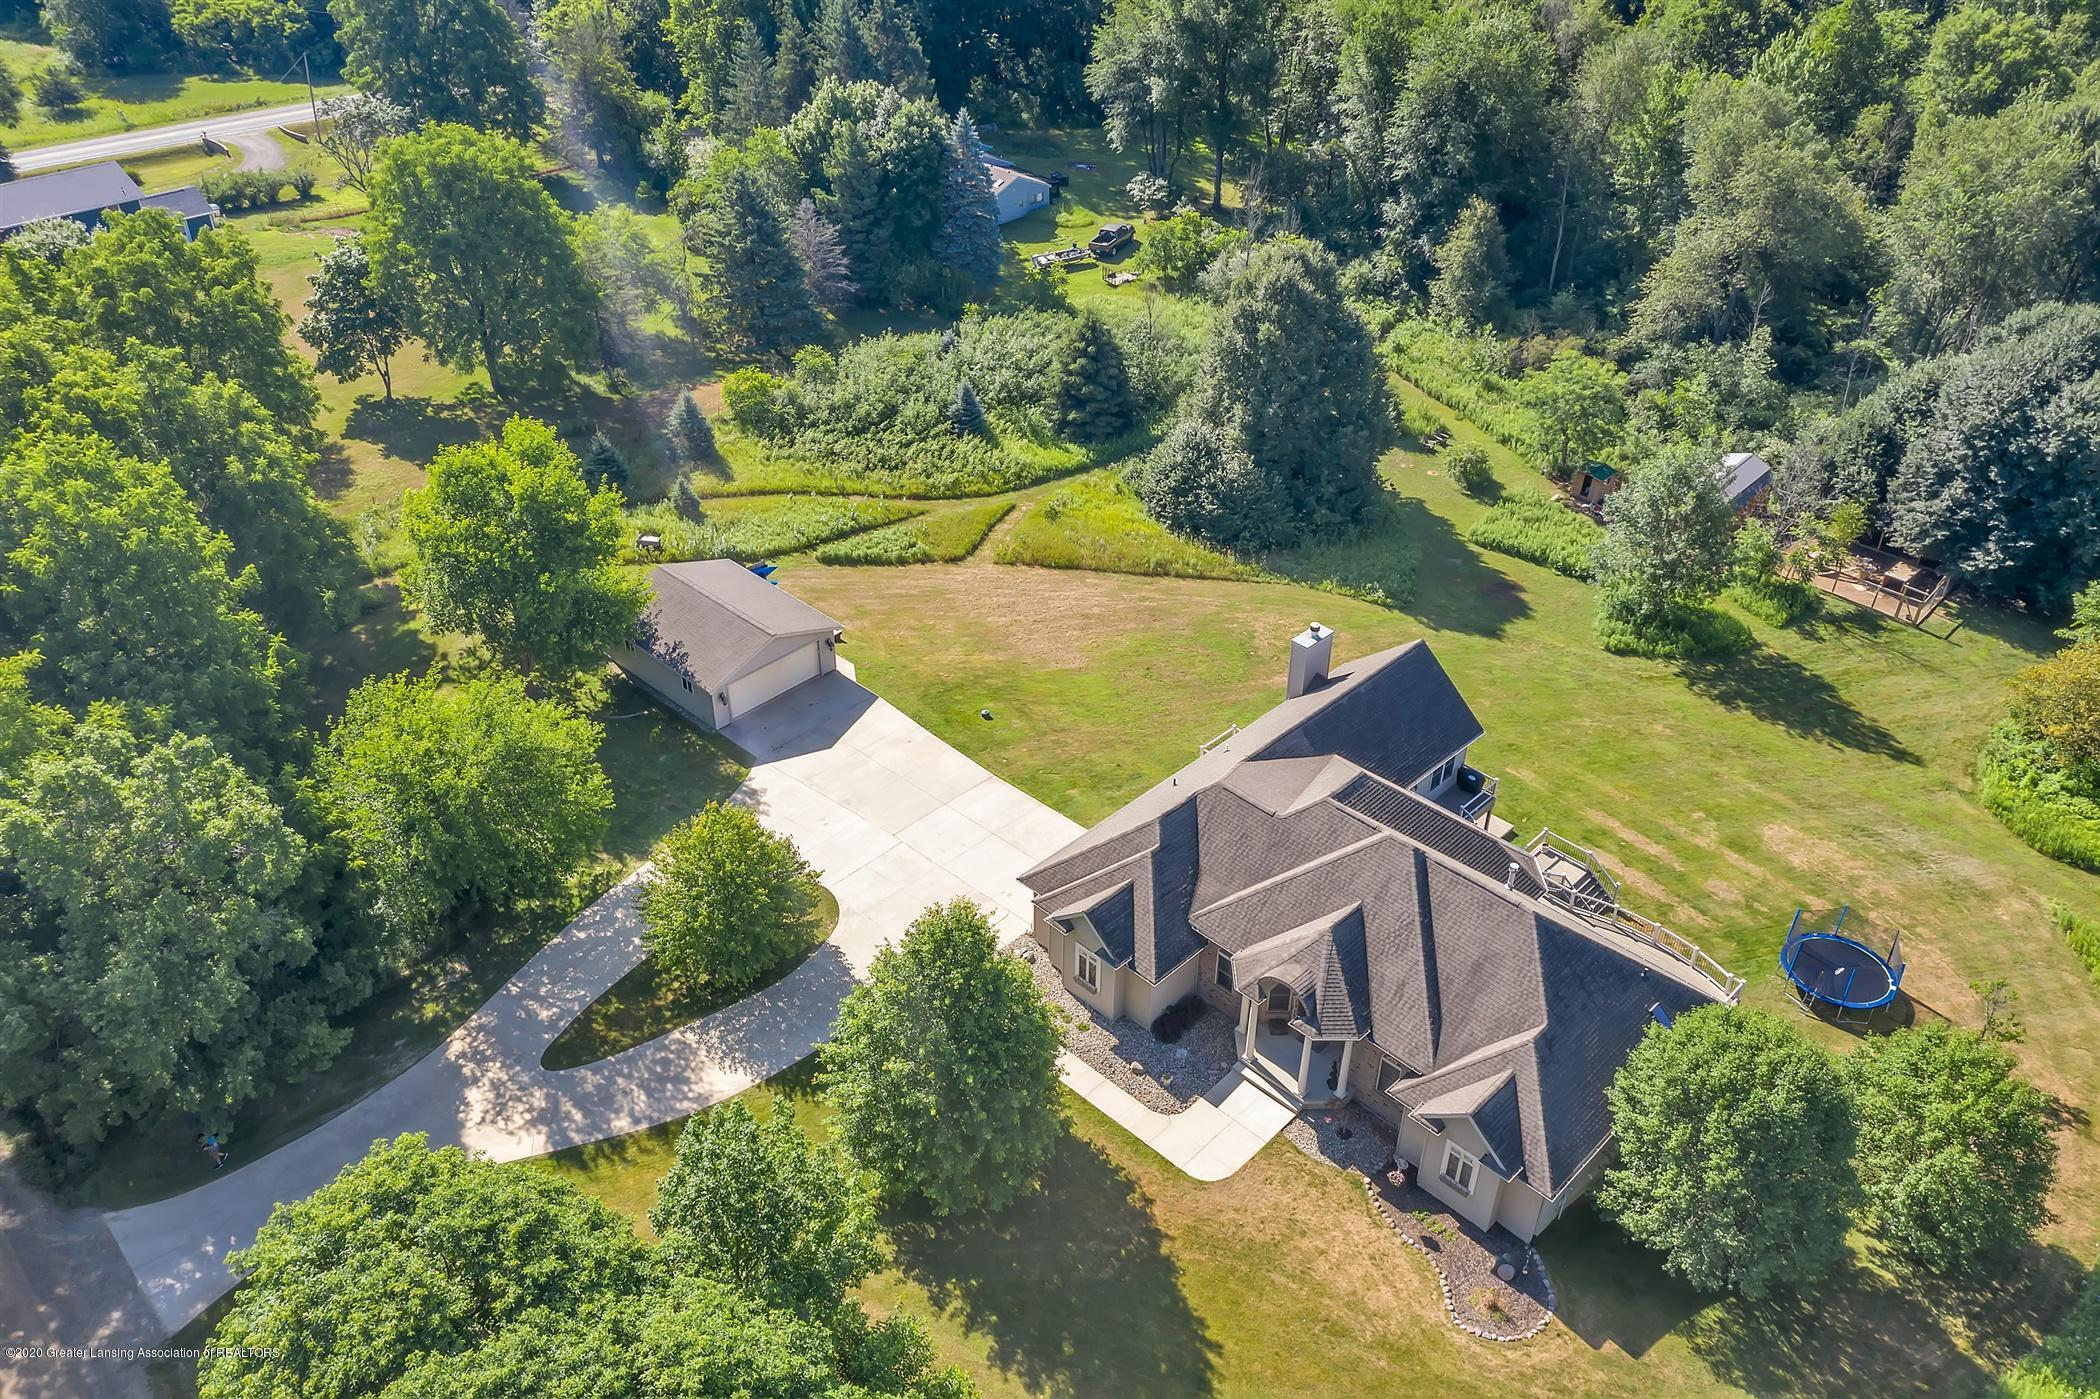 6255 Tyrrell Rd - Aerial View - 3